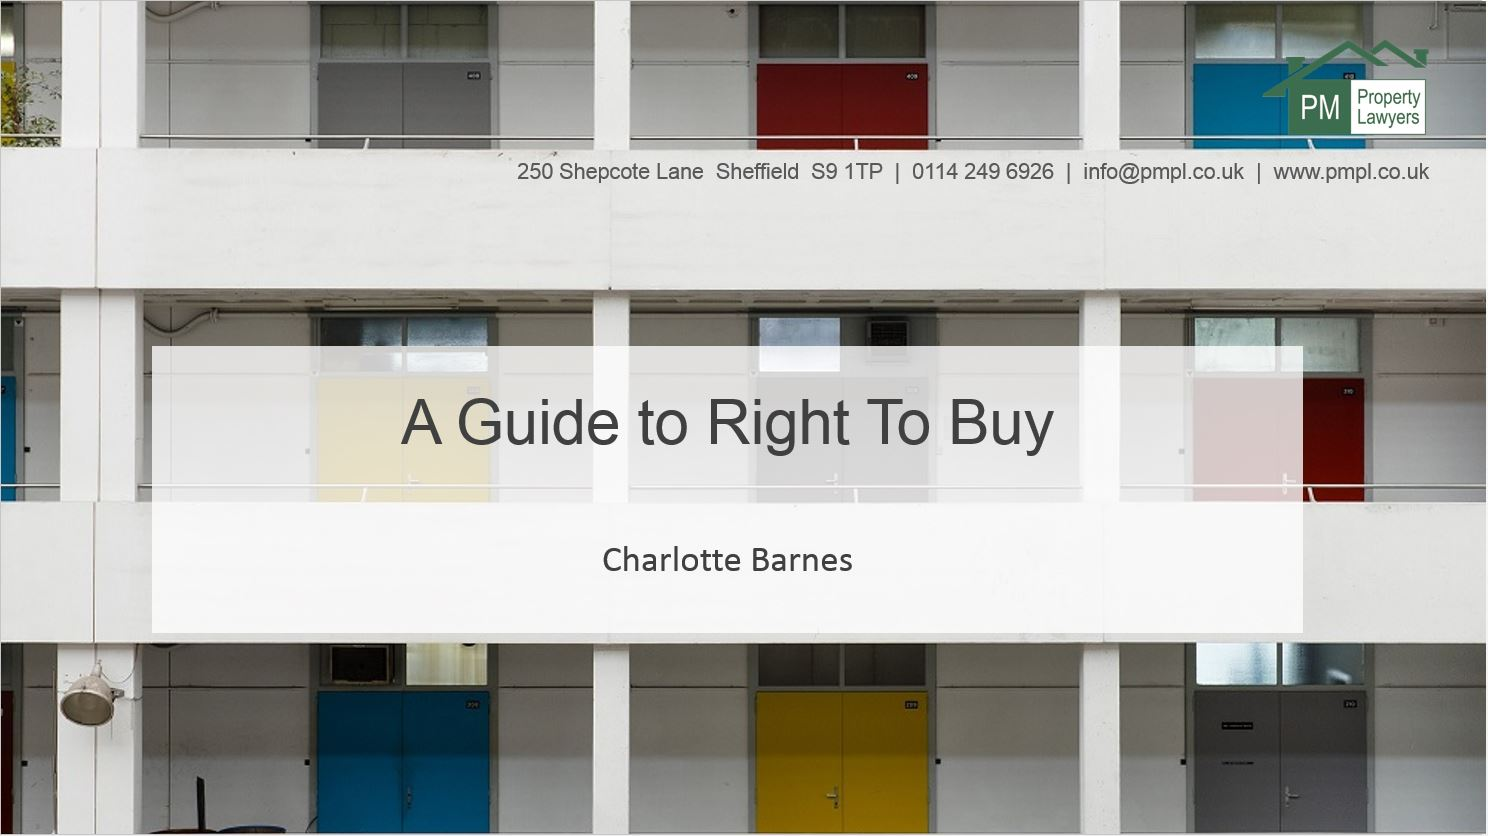 A Guide to 'right to buy'